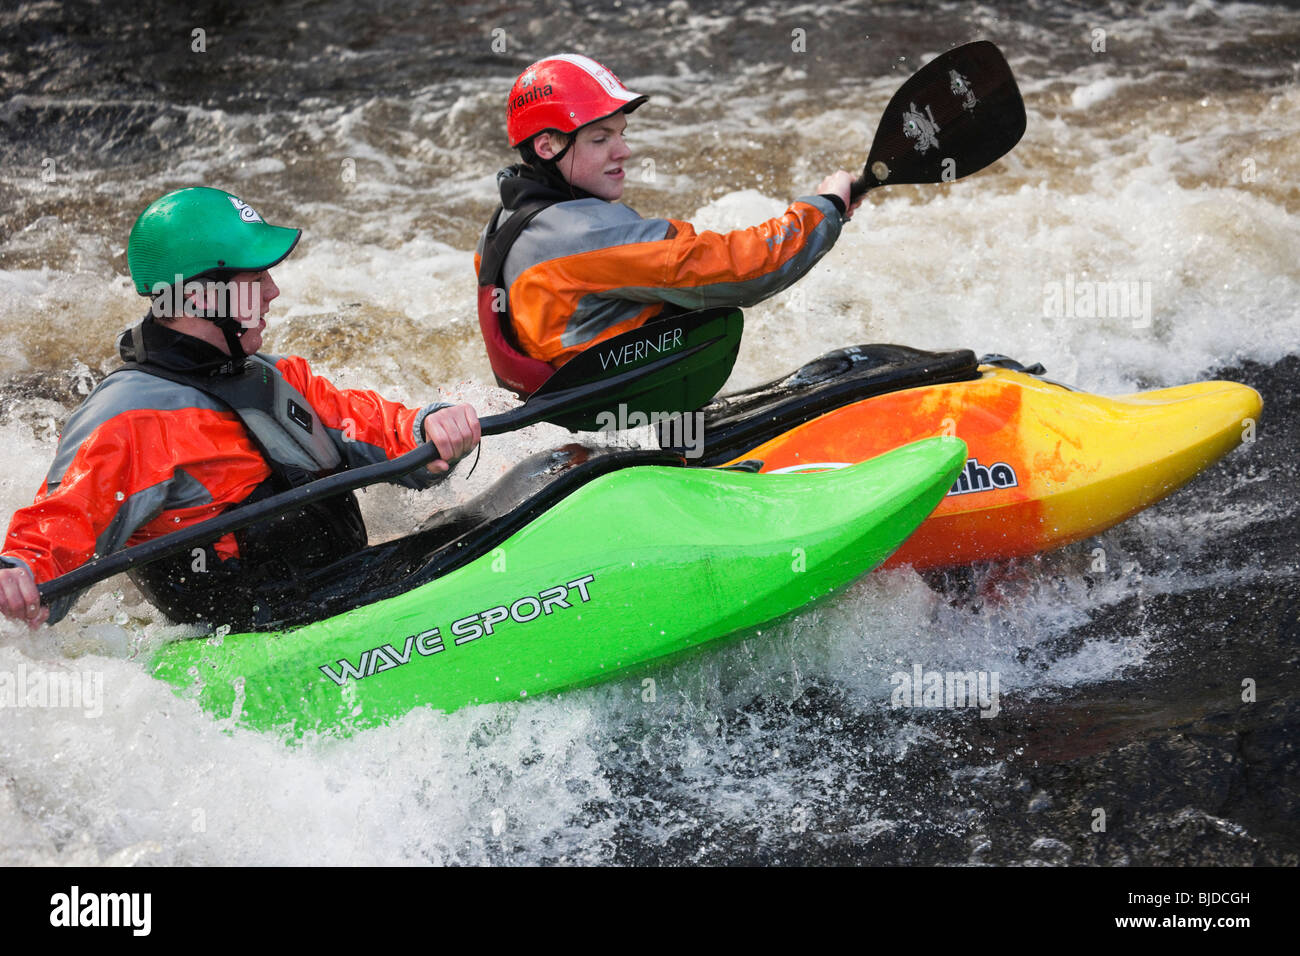 Two kayakers kayaking in white water on Tryweryn River. National Whitewater Centre, Frongoch, Gwynedd, North Wales, - Stock Image